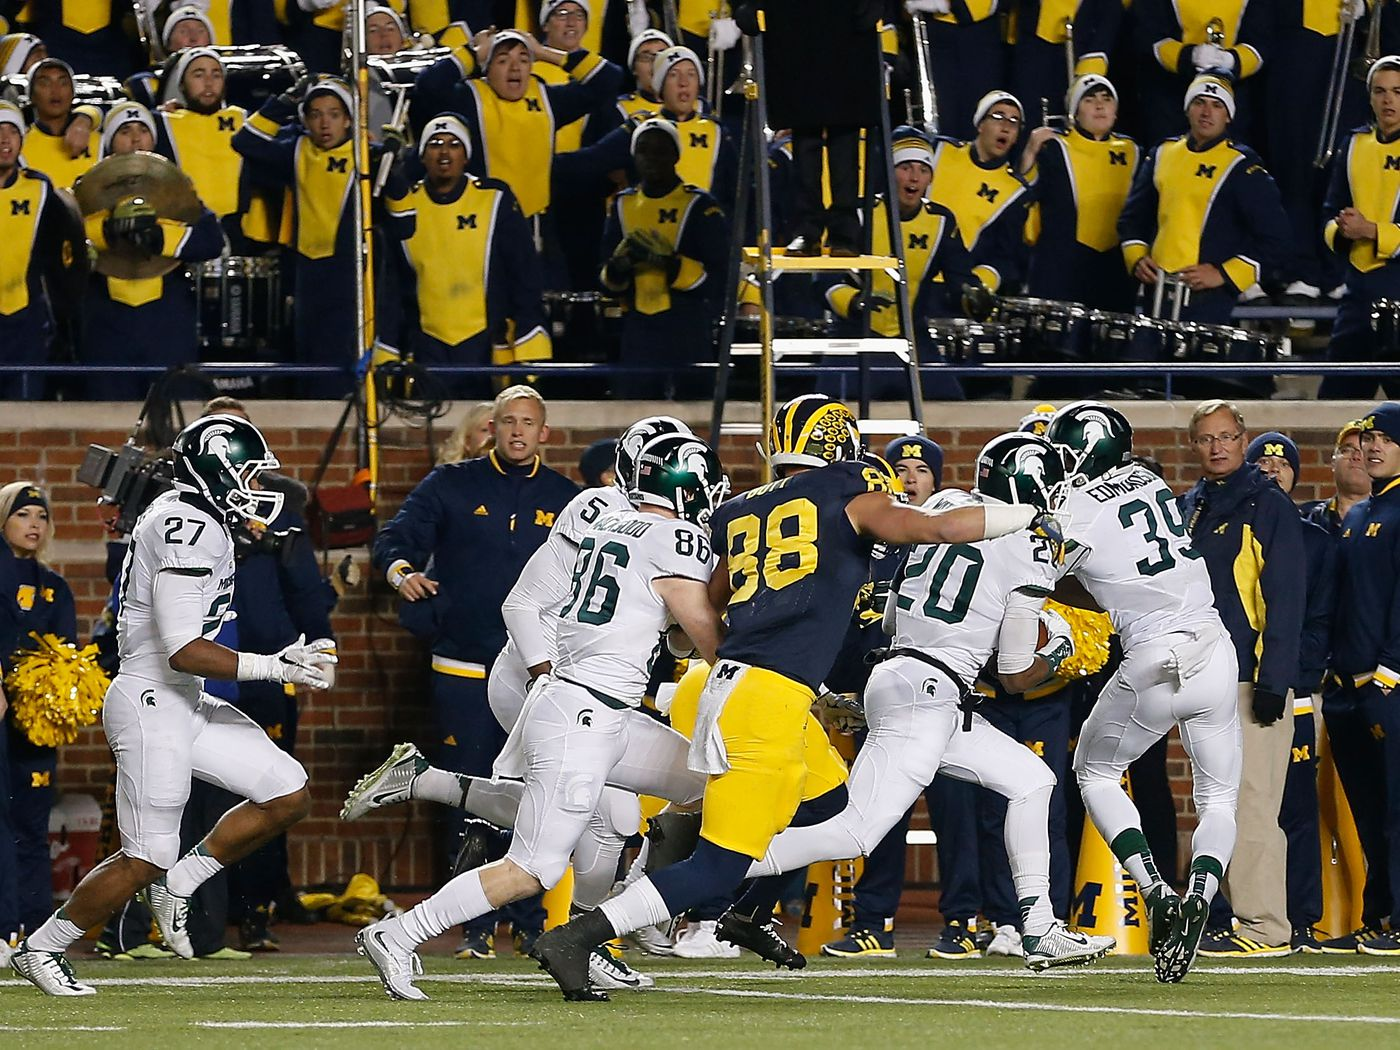 Michigan State Vs Michigan 2015 Wildest Ending Ever